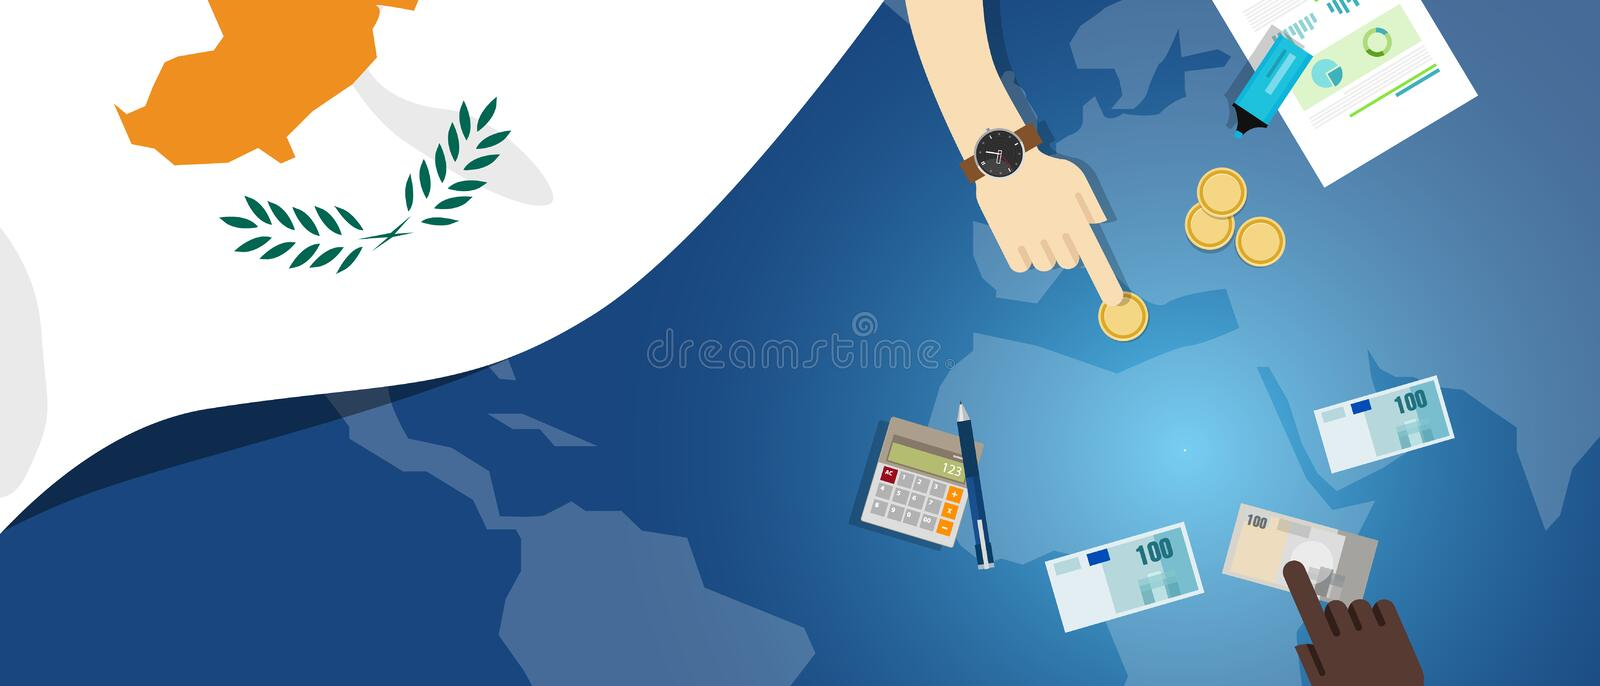 Cyprus economy fiscal money trade concept illustration of financial banking budget with flag map and currency. Vector vector illustration